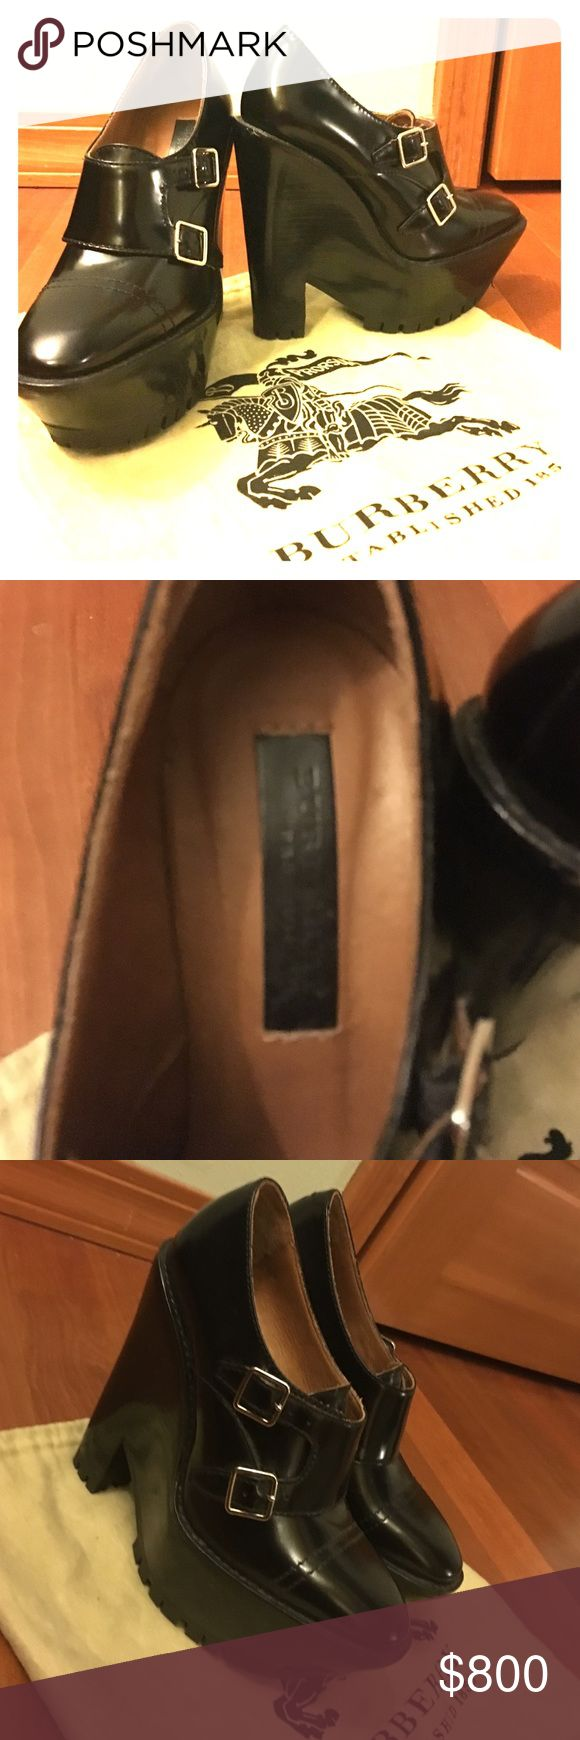 "Burberry limited edition booties Burberry black leather booties size 37 euro 7 US worn twice, heel 7"" silver buckles. Tiny scuff   On left back heel otherwise in pristine condition. Comes with dust bag no box or card. No trades. Burberry Shoes Ankle Boots & Booties"